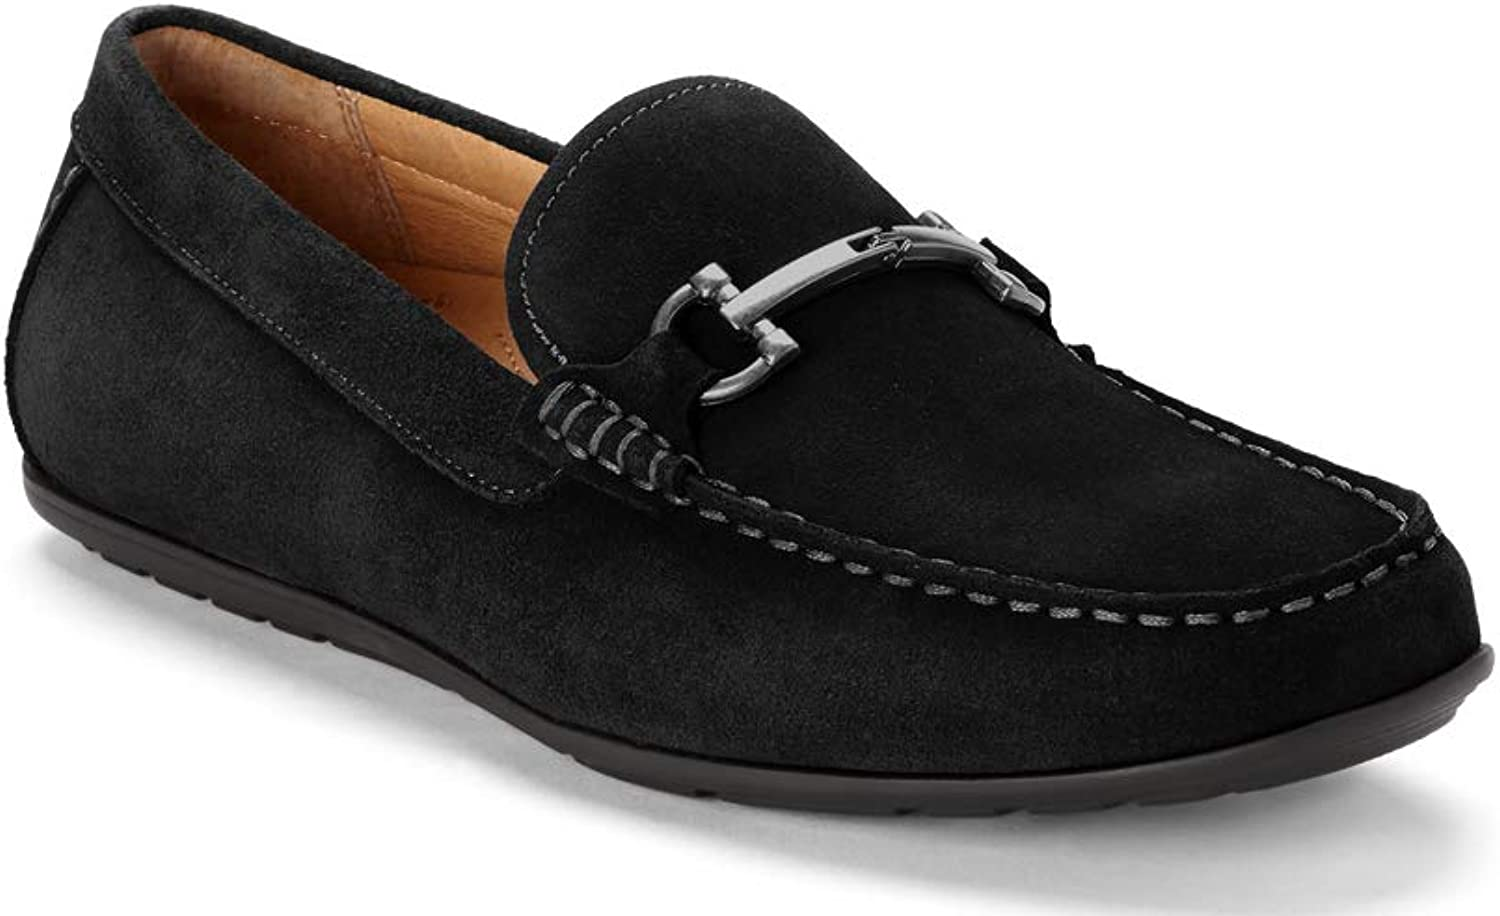 Vionic Men's Mercer Mason Driving Moccasins – Leather Suede Loafer for Men with Concealed Orthotic Support